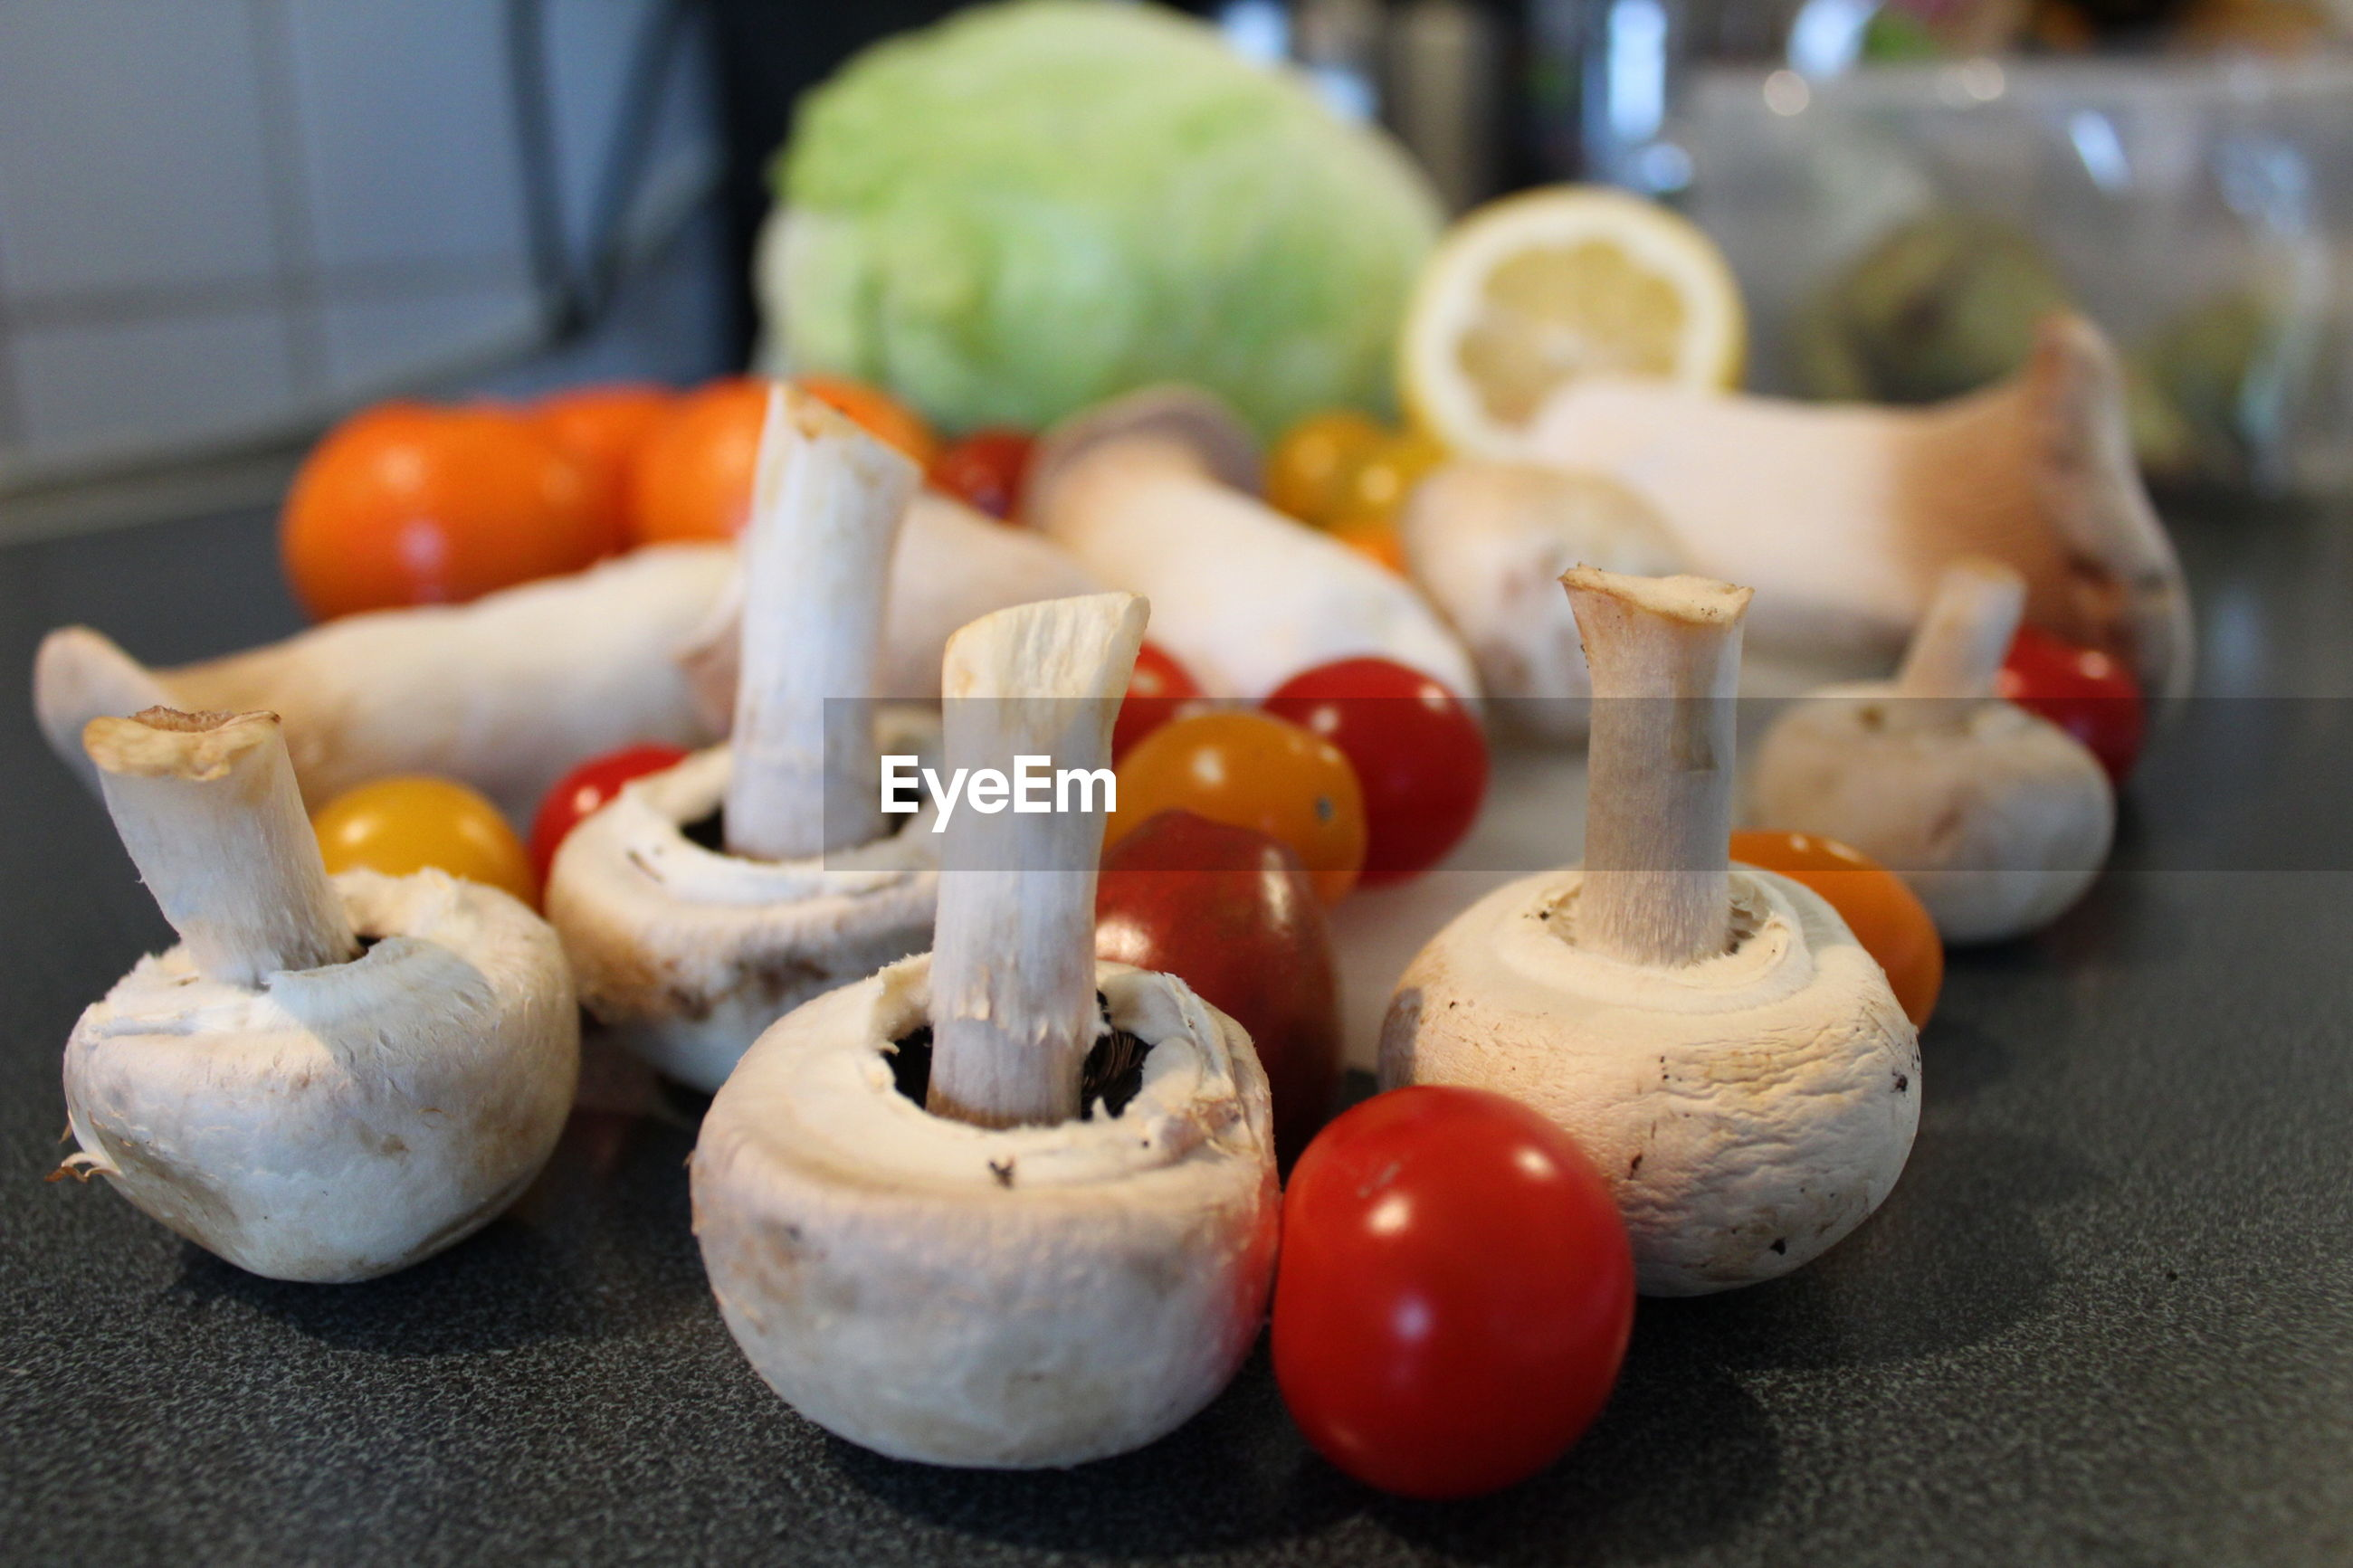 CLOSE-UP OF FRUIT AND VEGETABLES ON TABLE